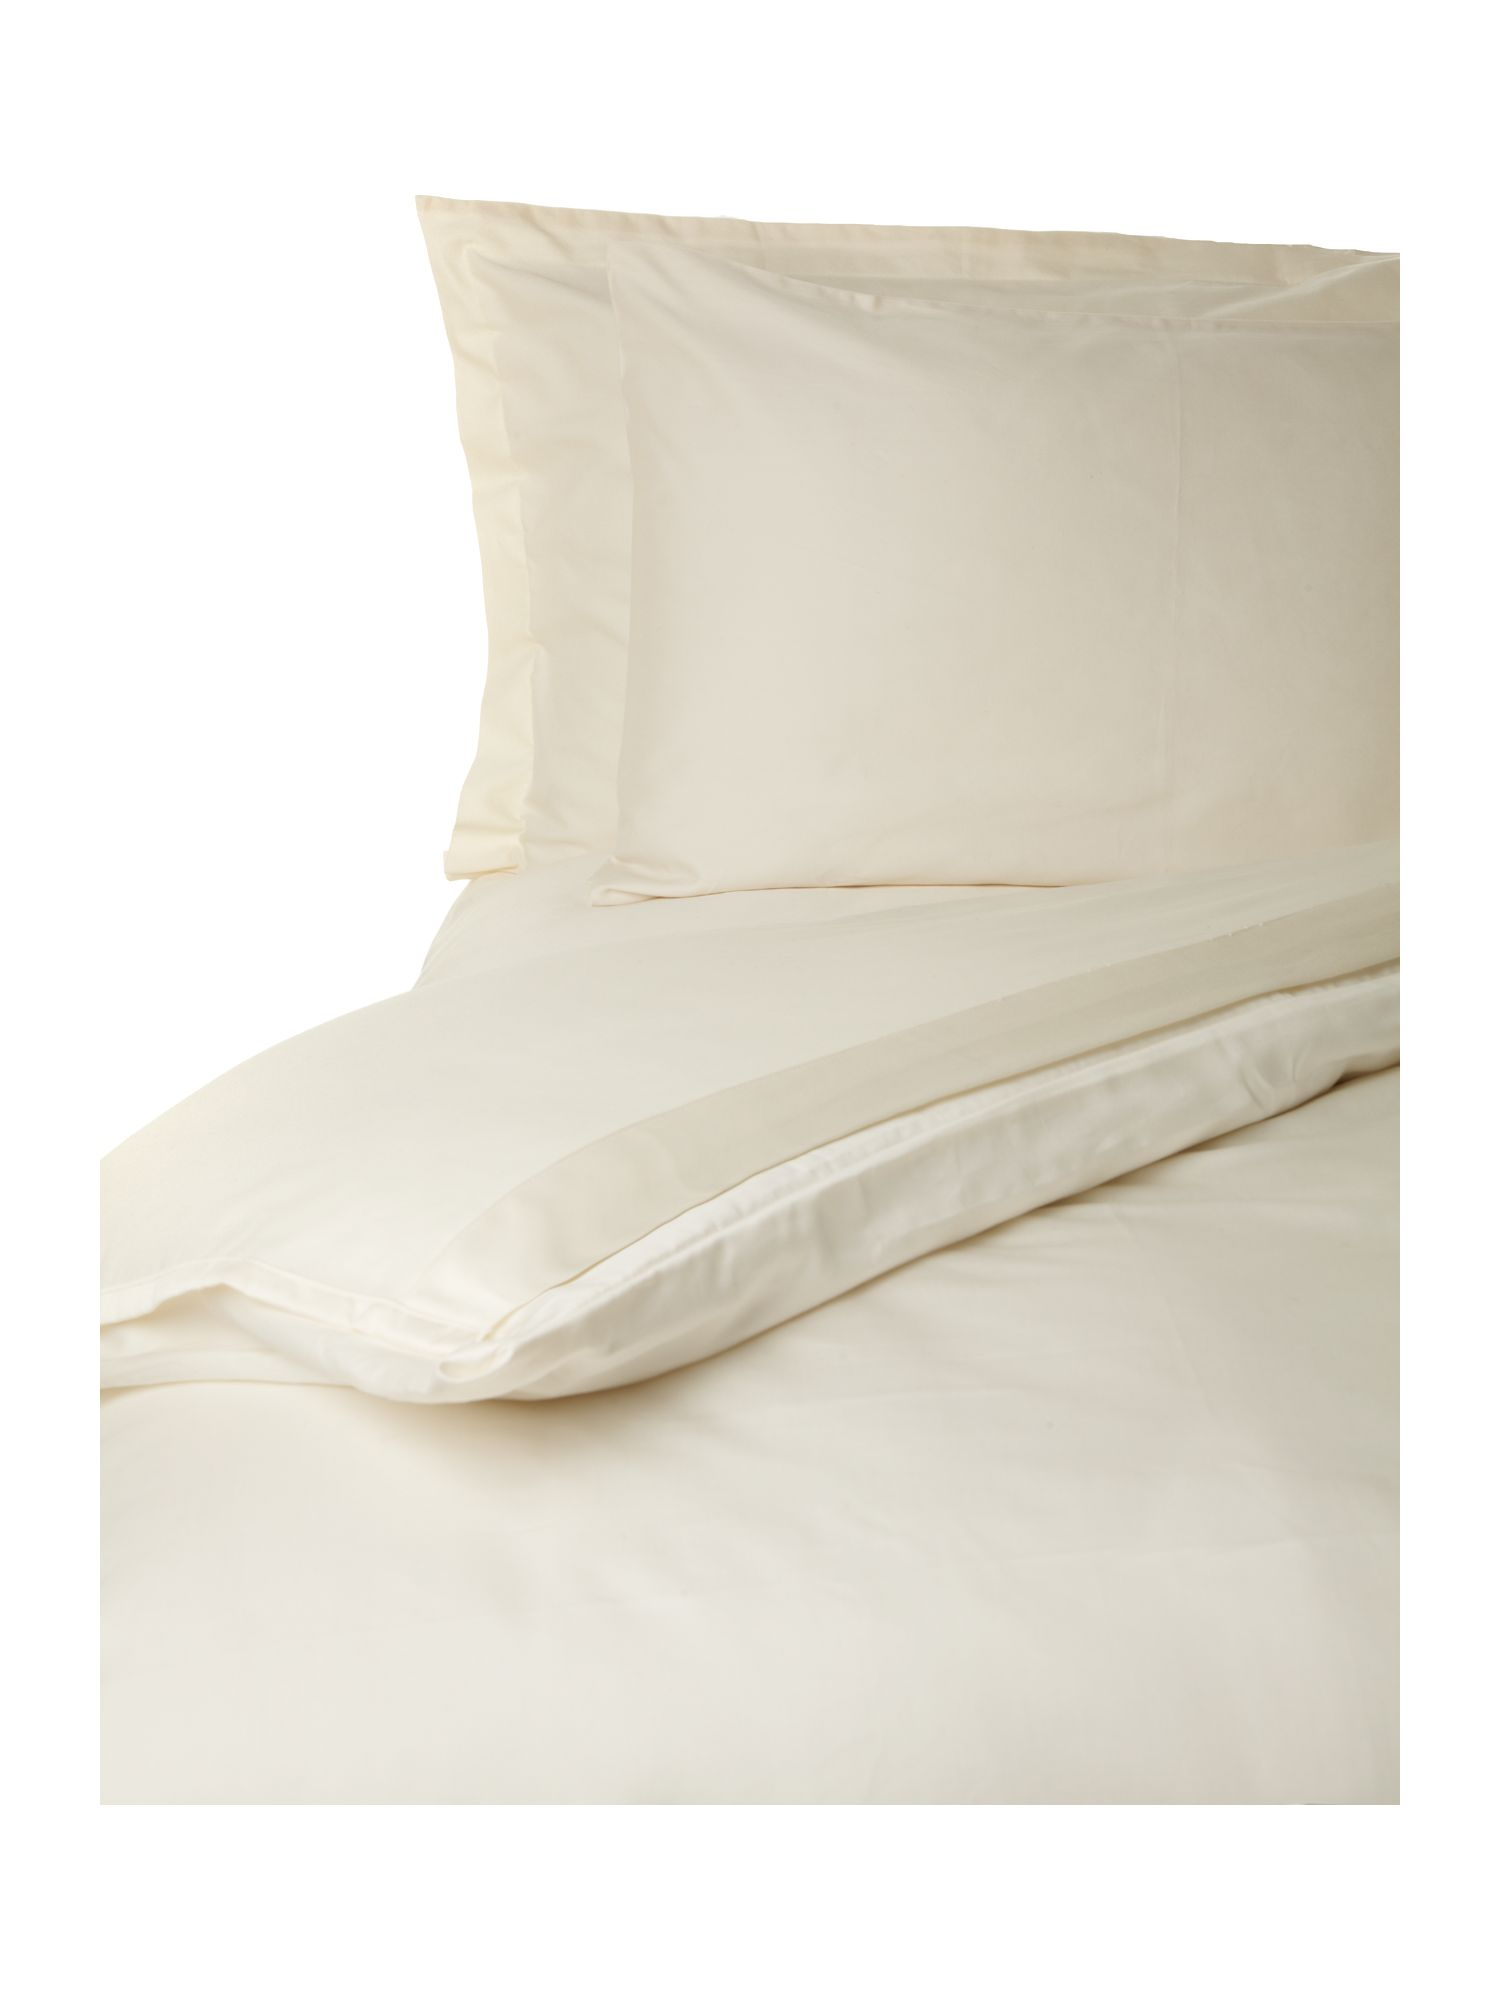 500 Thread count cream sheeting range